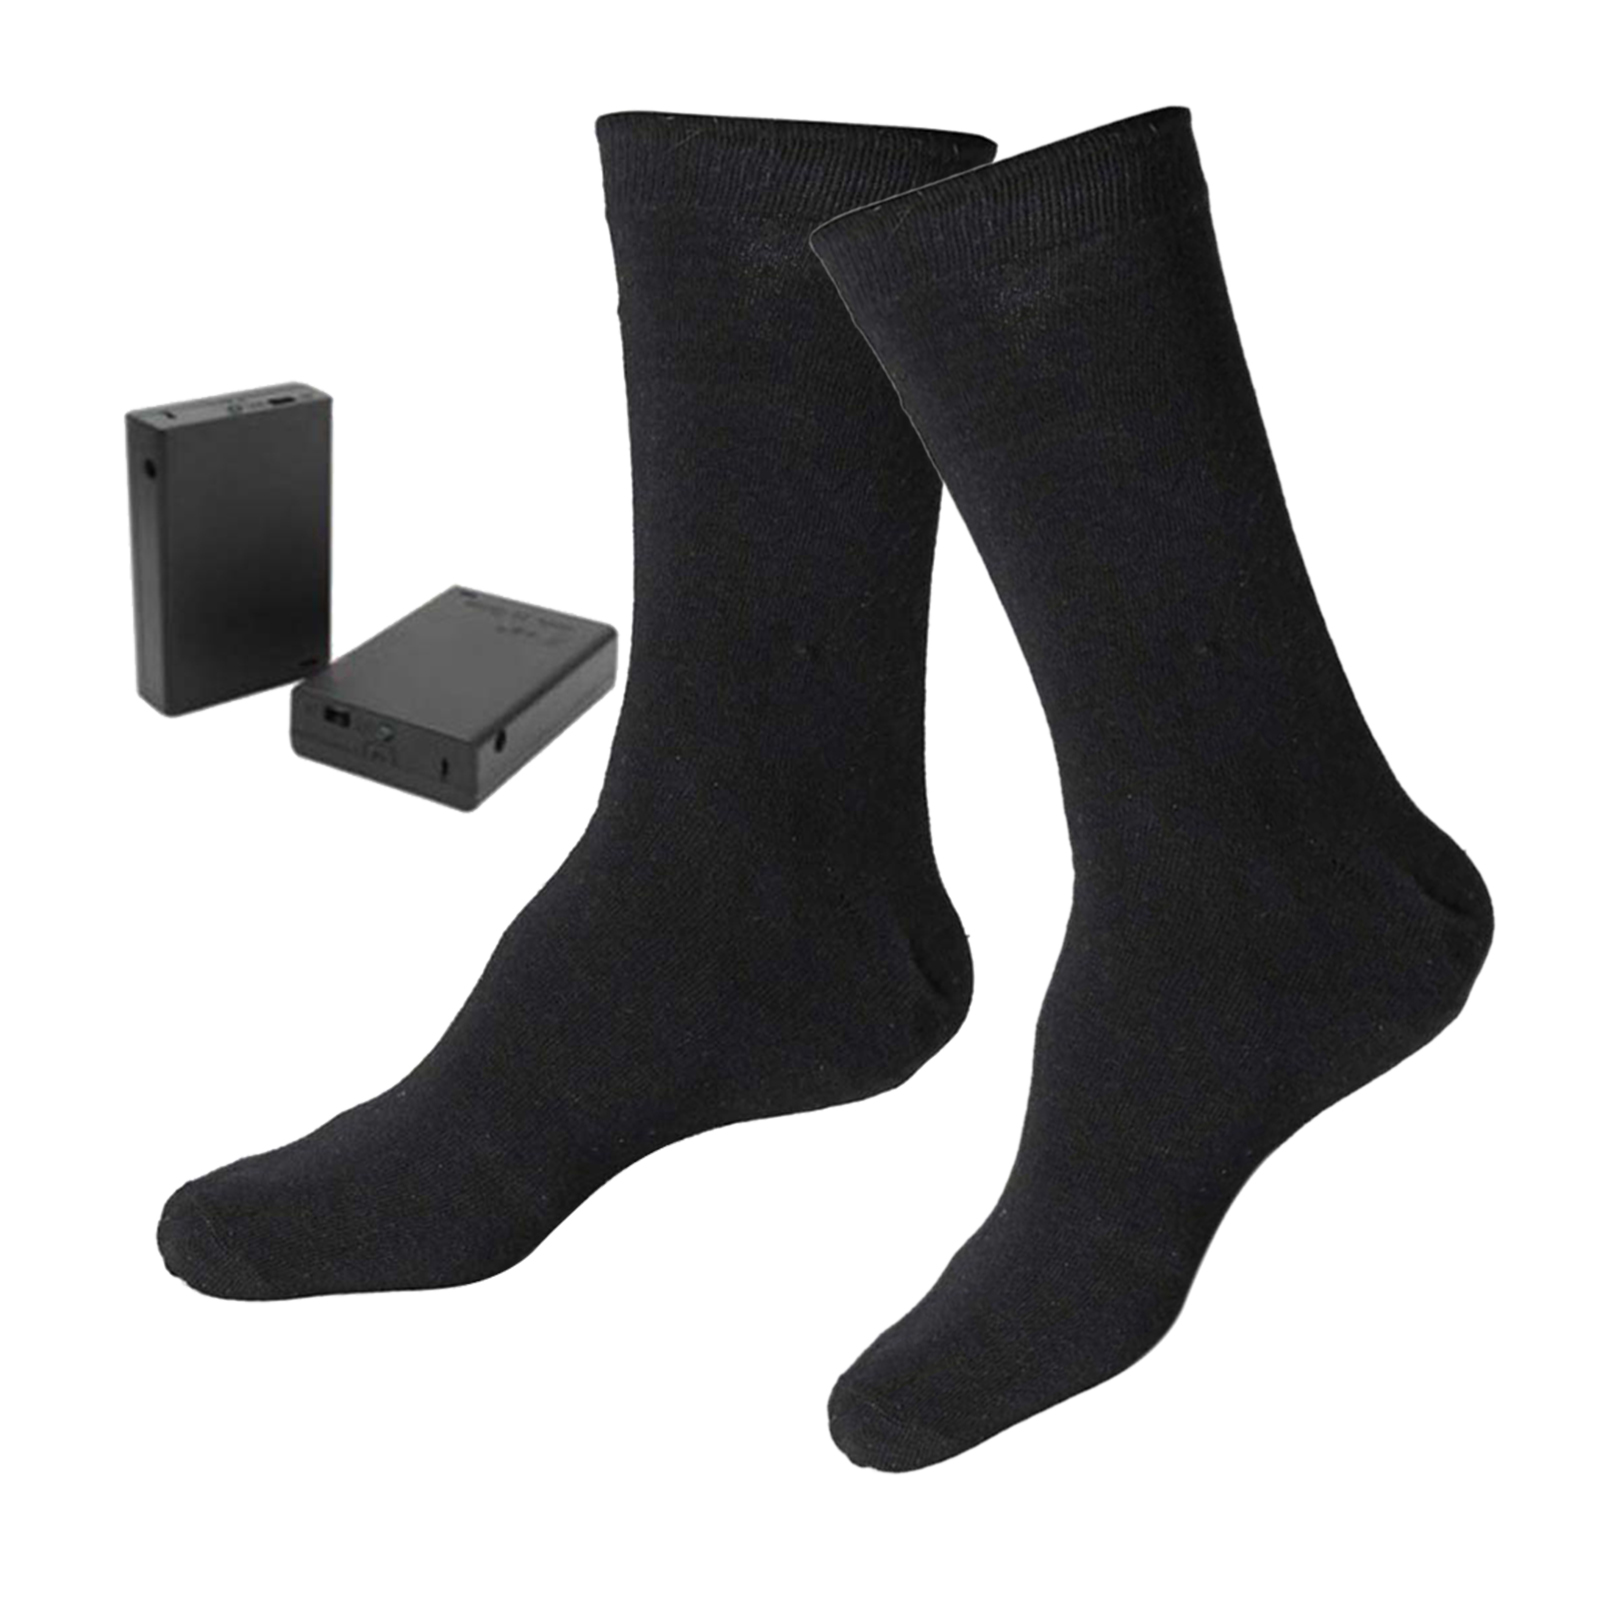 Electric Heated Socks for Boots, Feet, Legs, Cotton Socks, Breathable, Climbing, Ski, Foot, Boots, Warmers for